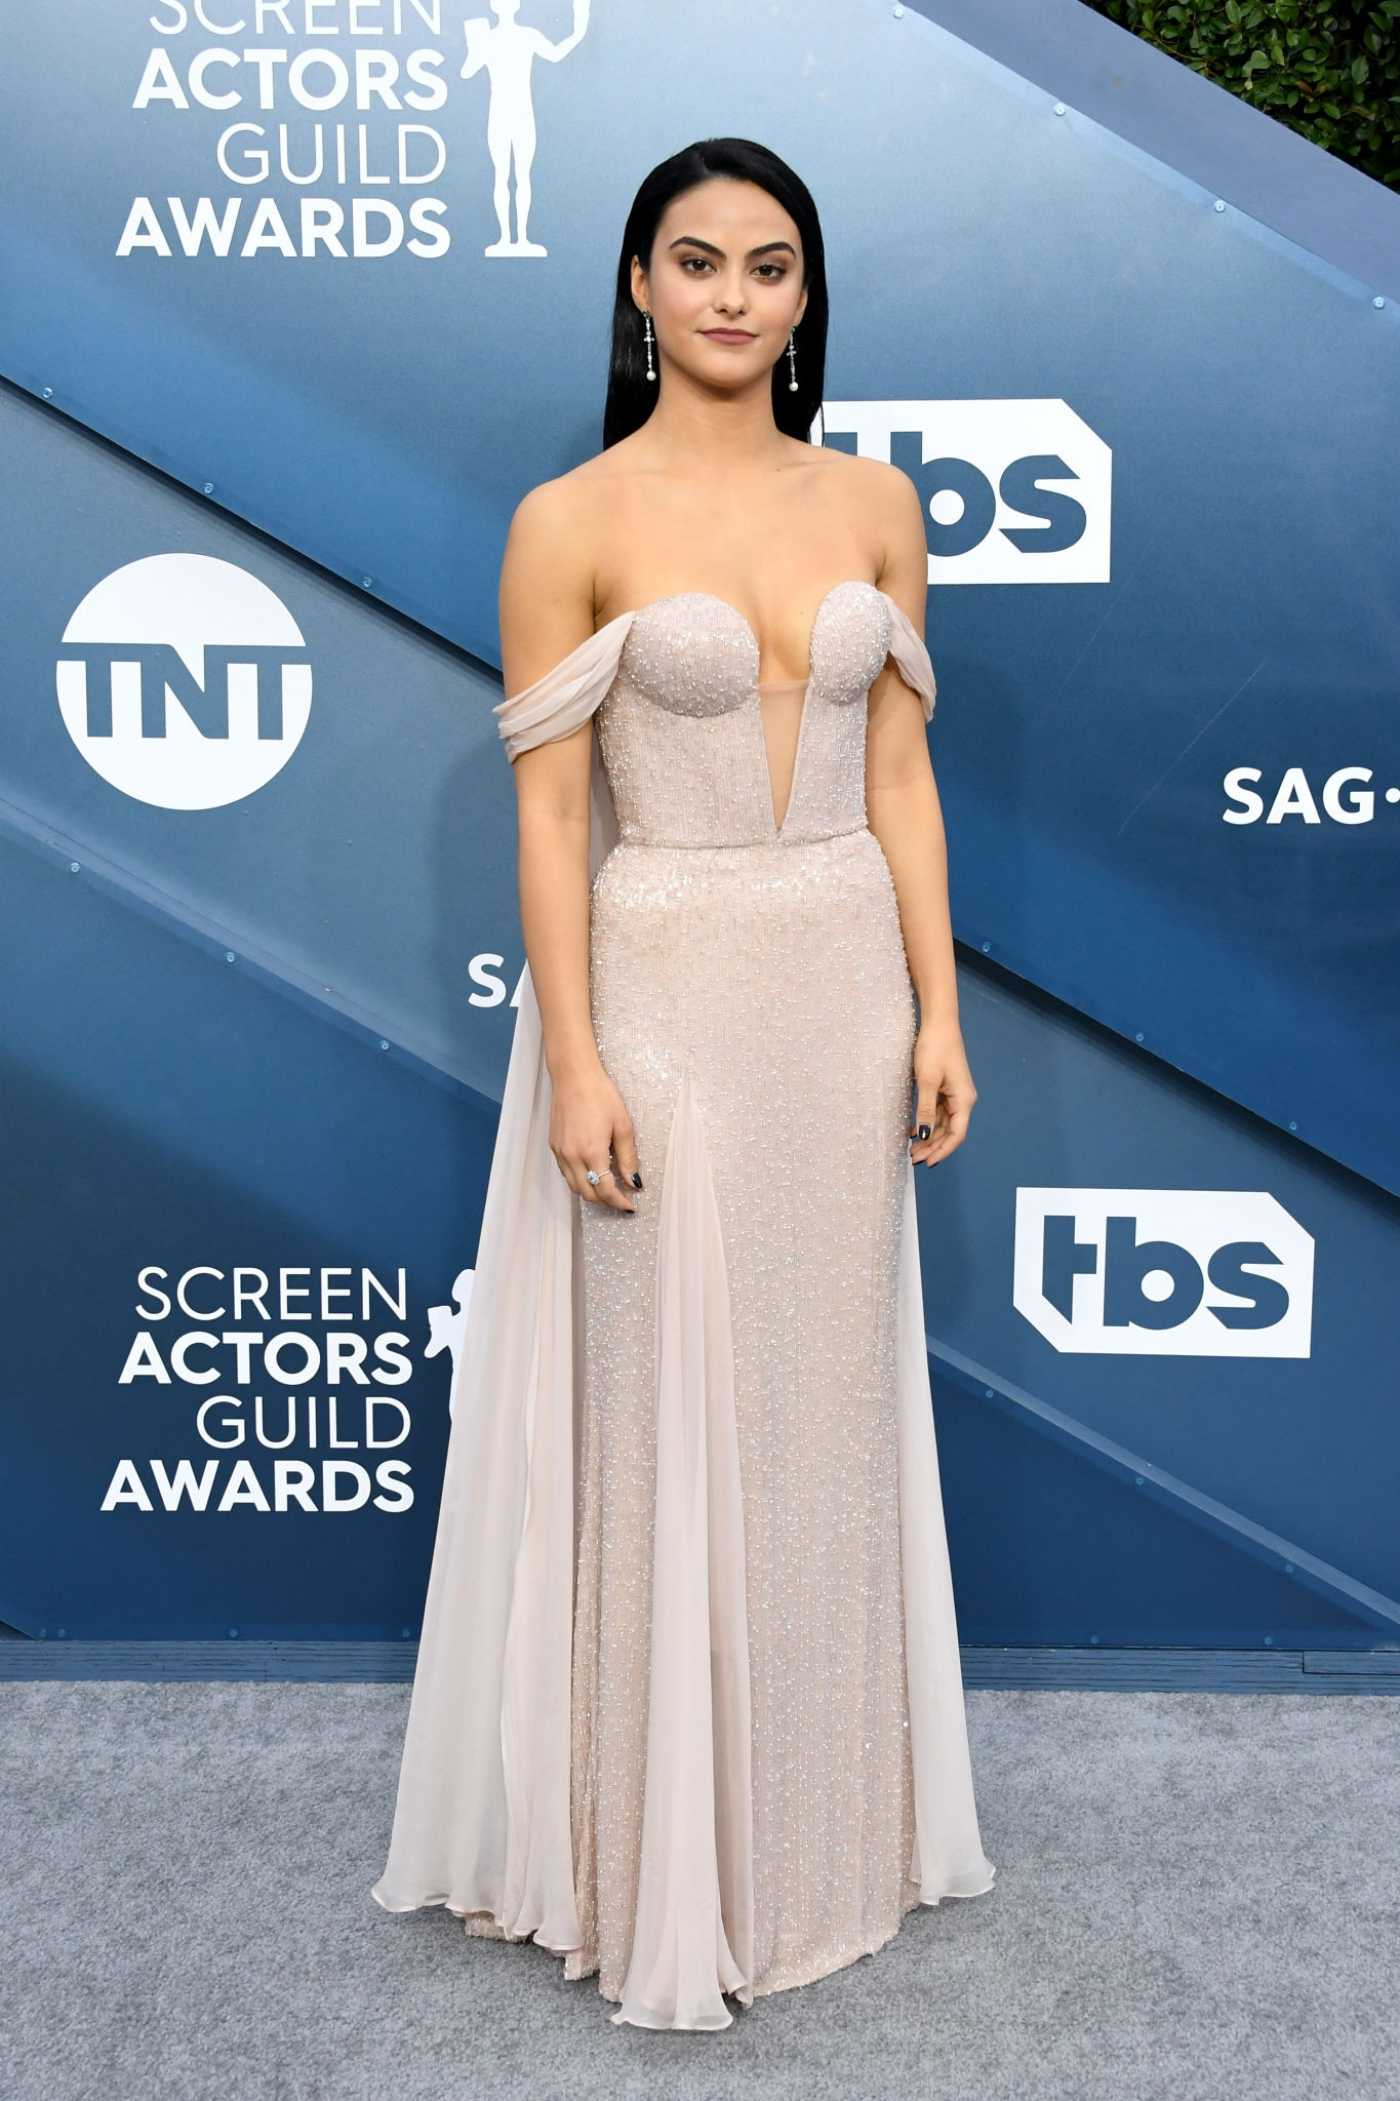 Camila Mendes Attends the 26th Annual Screen Actors Guild Awards in Los Angeles 01/19/2020